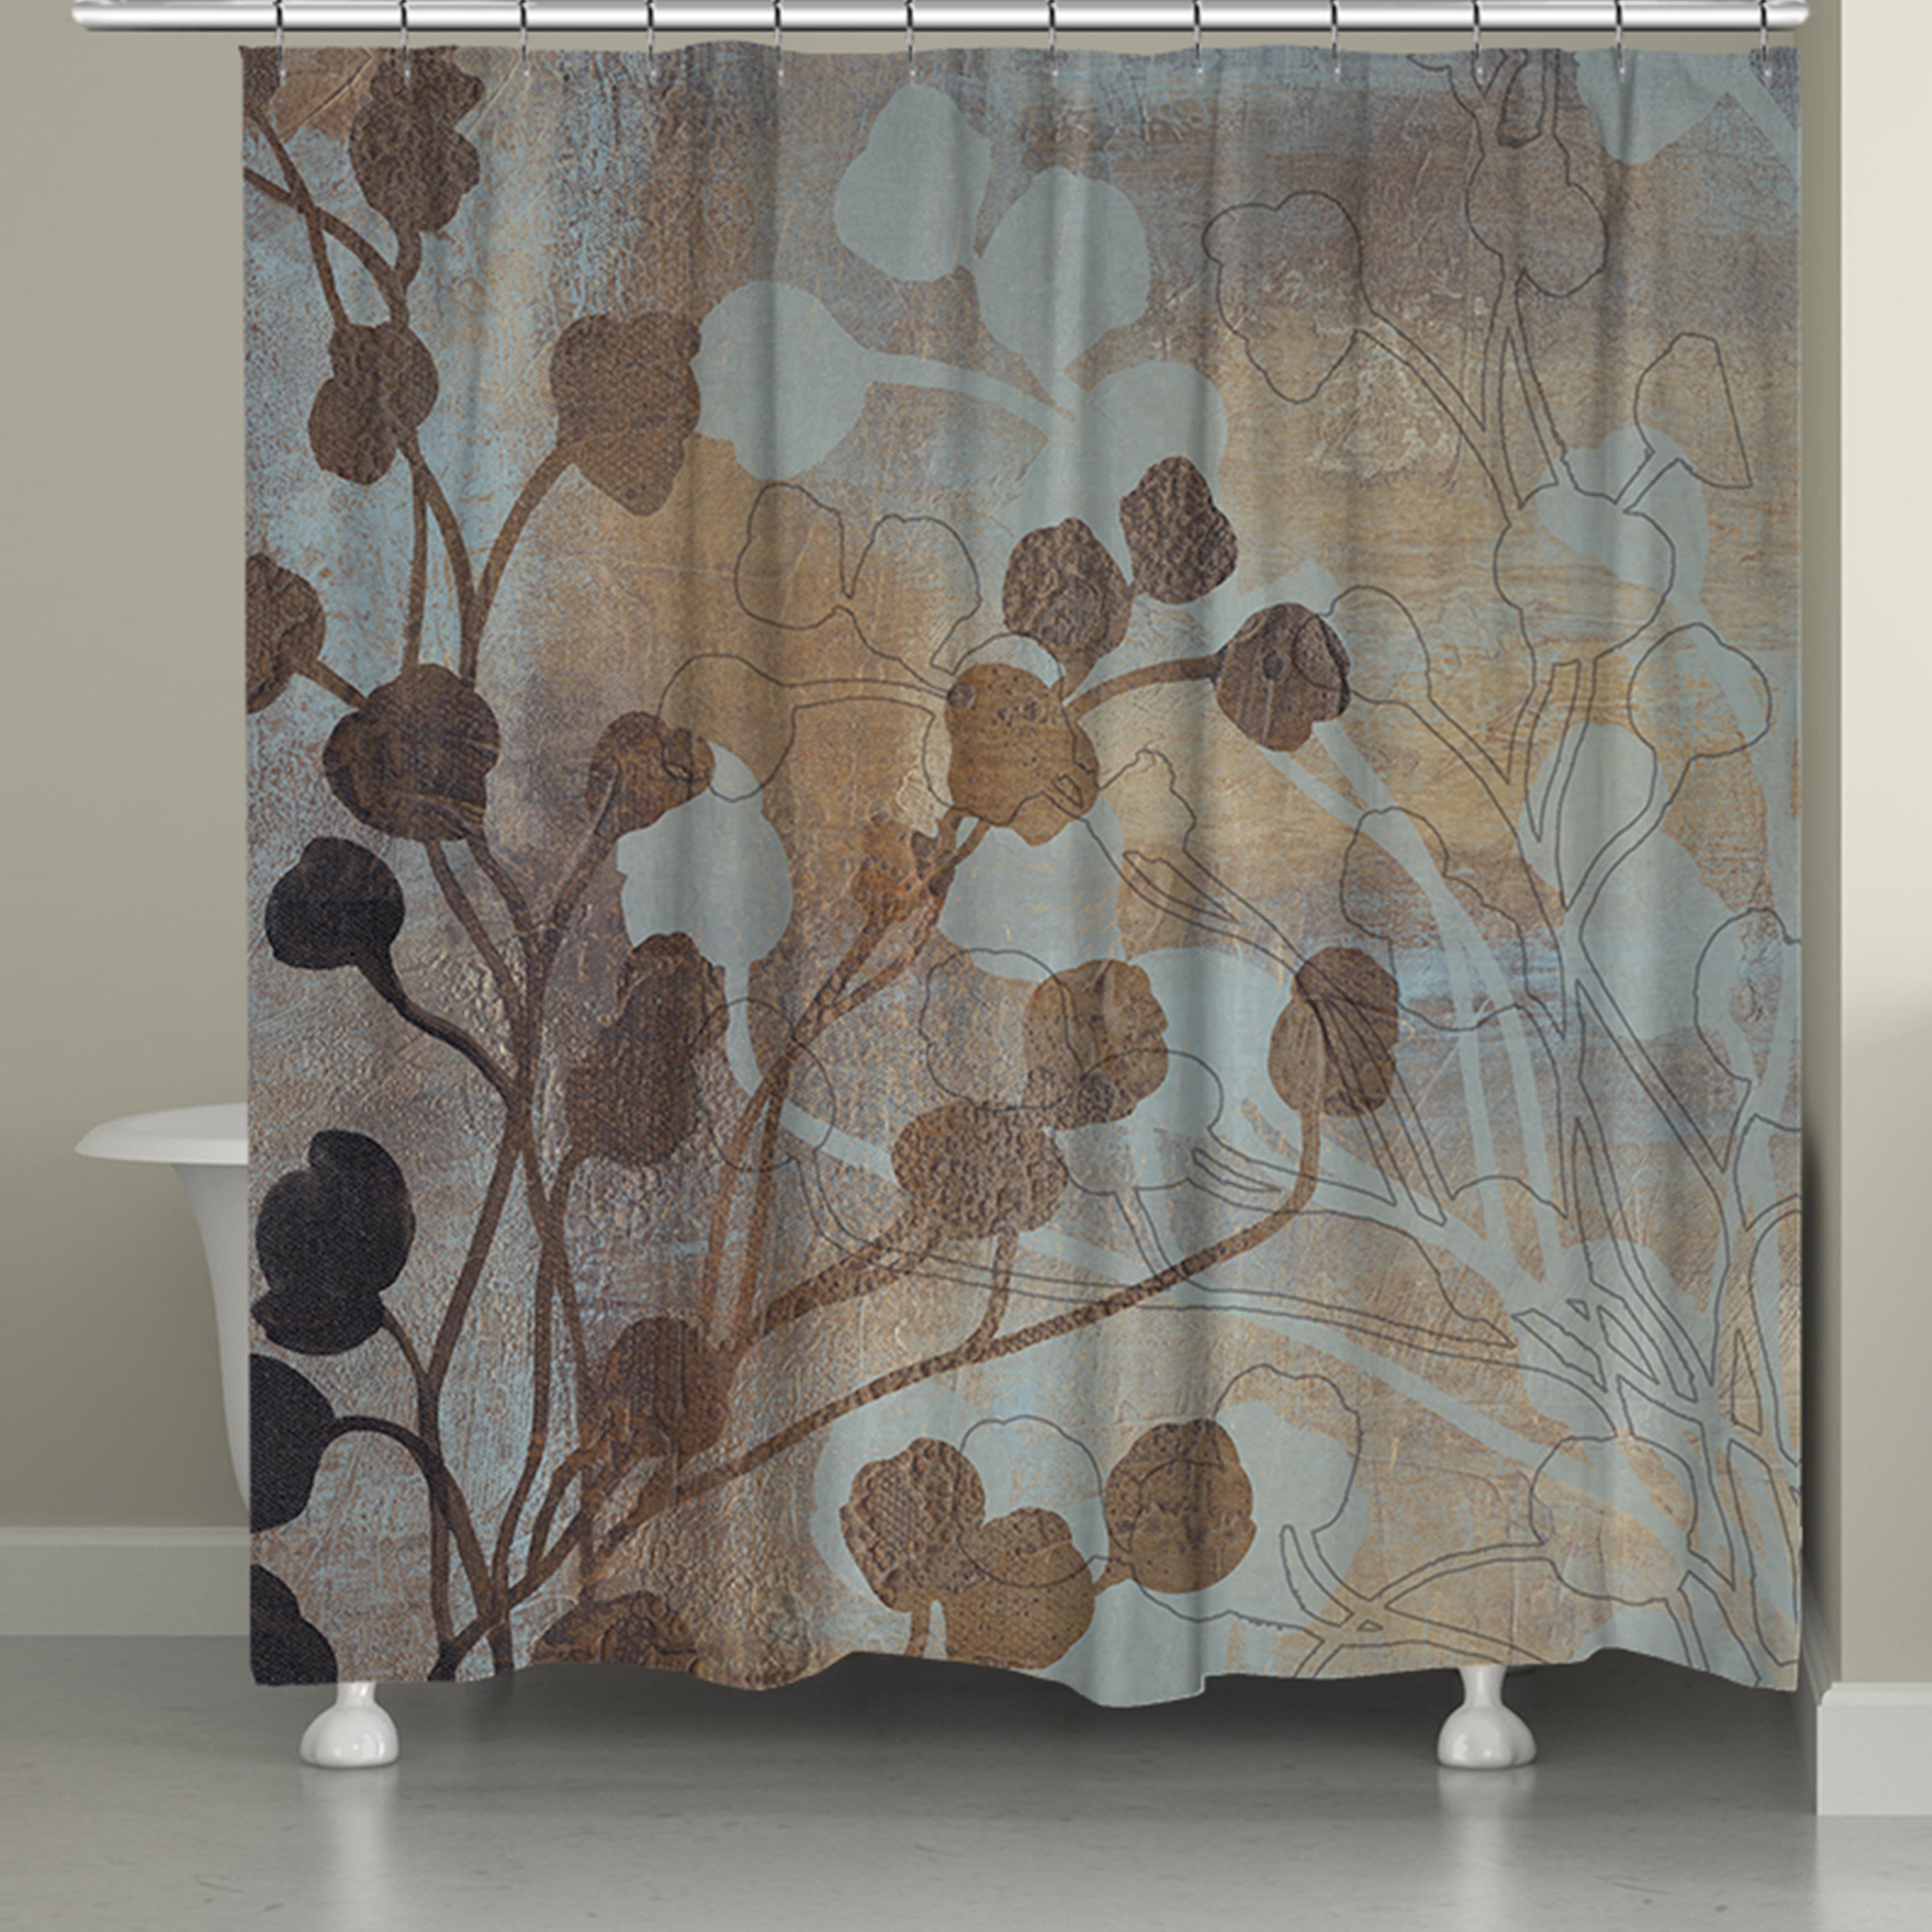 laural home bronze gold spa shower curtain 71 inch x 74 inch